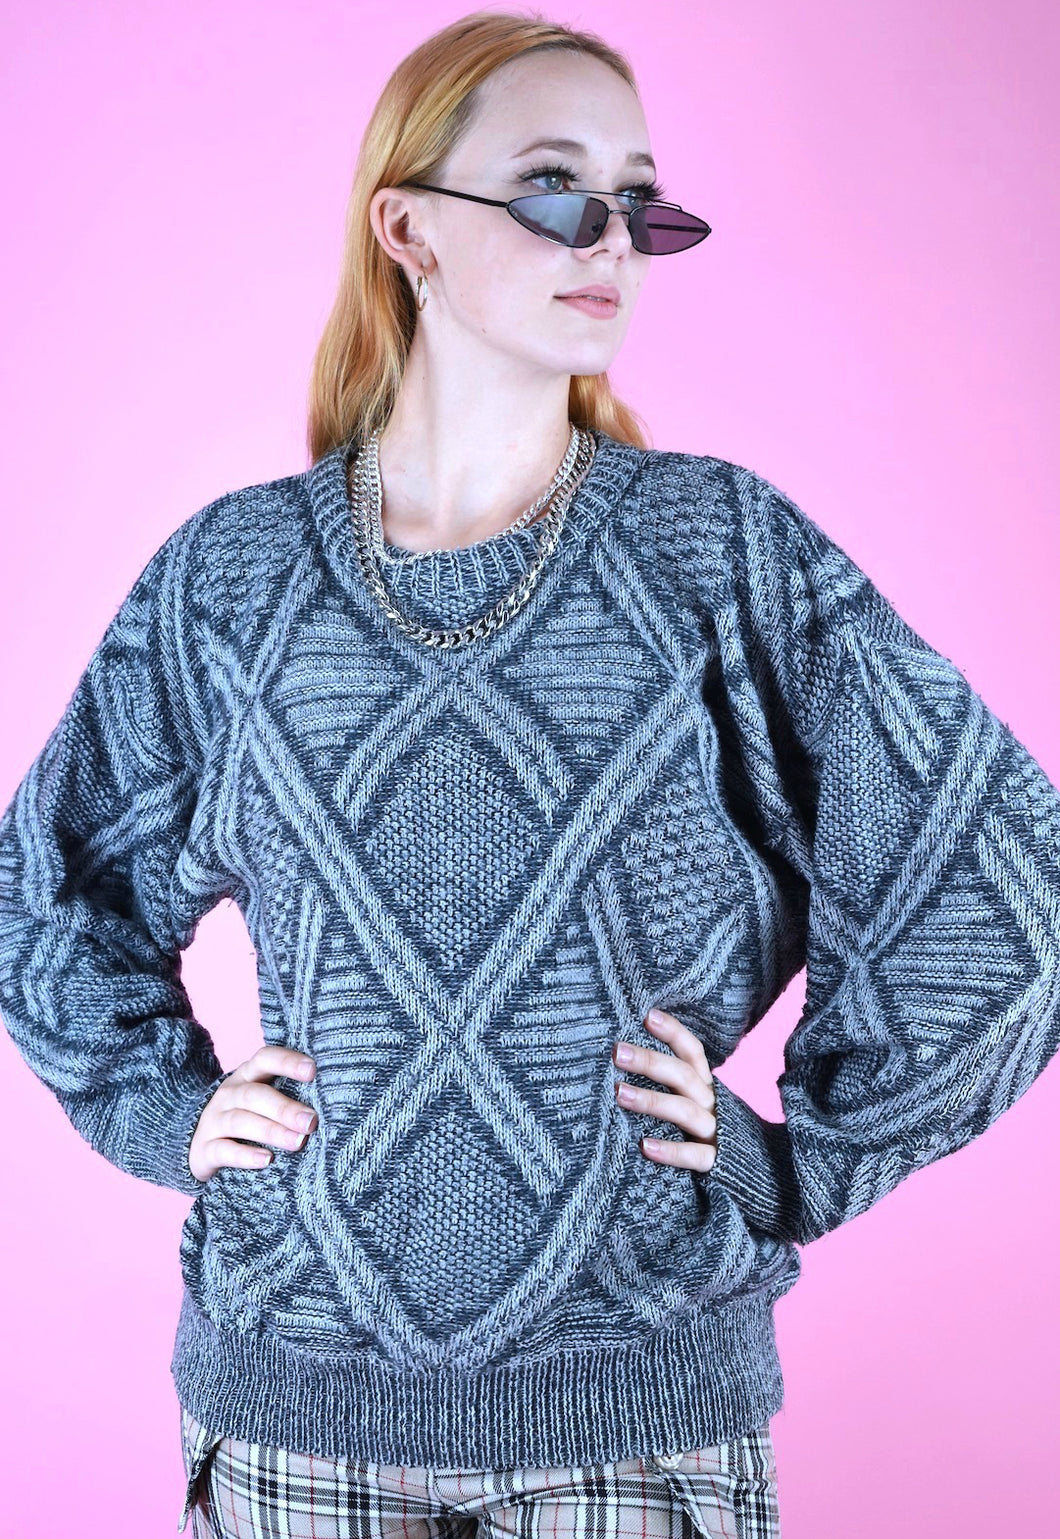 Vintage 90s Knit Jumper Geometric Pattern Blue Grey in M/L